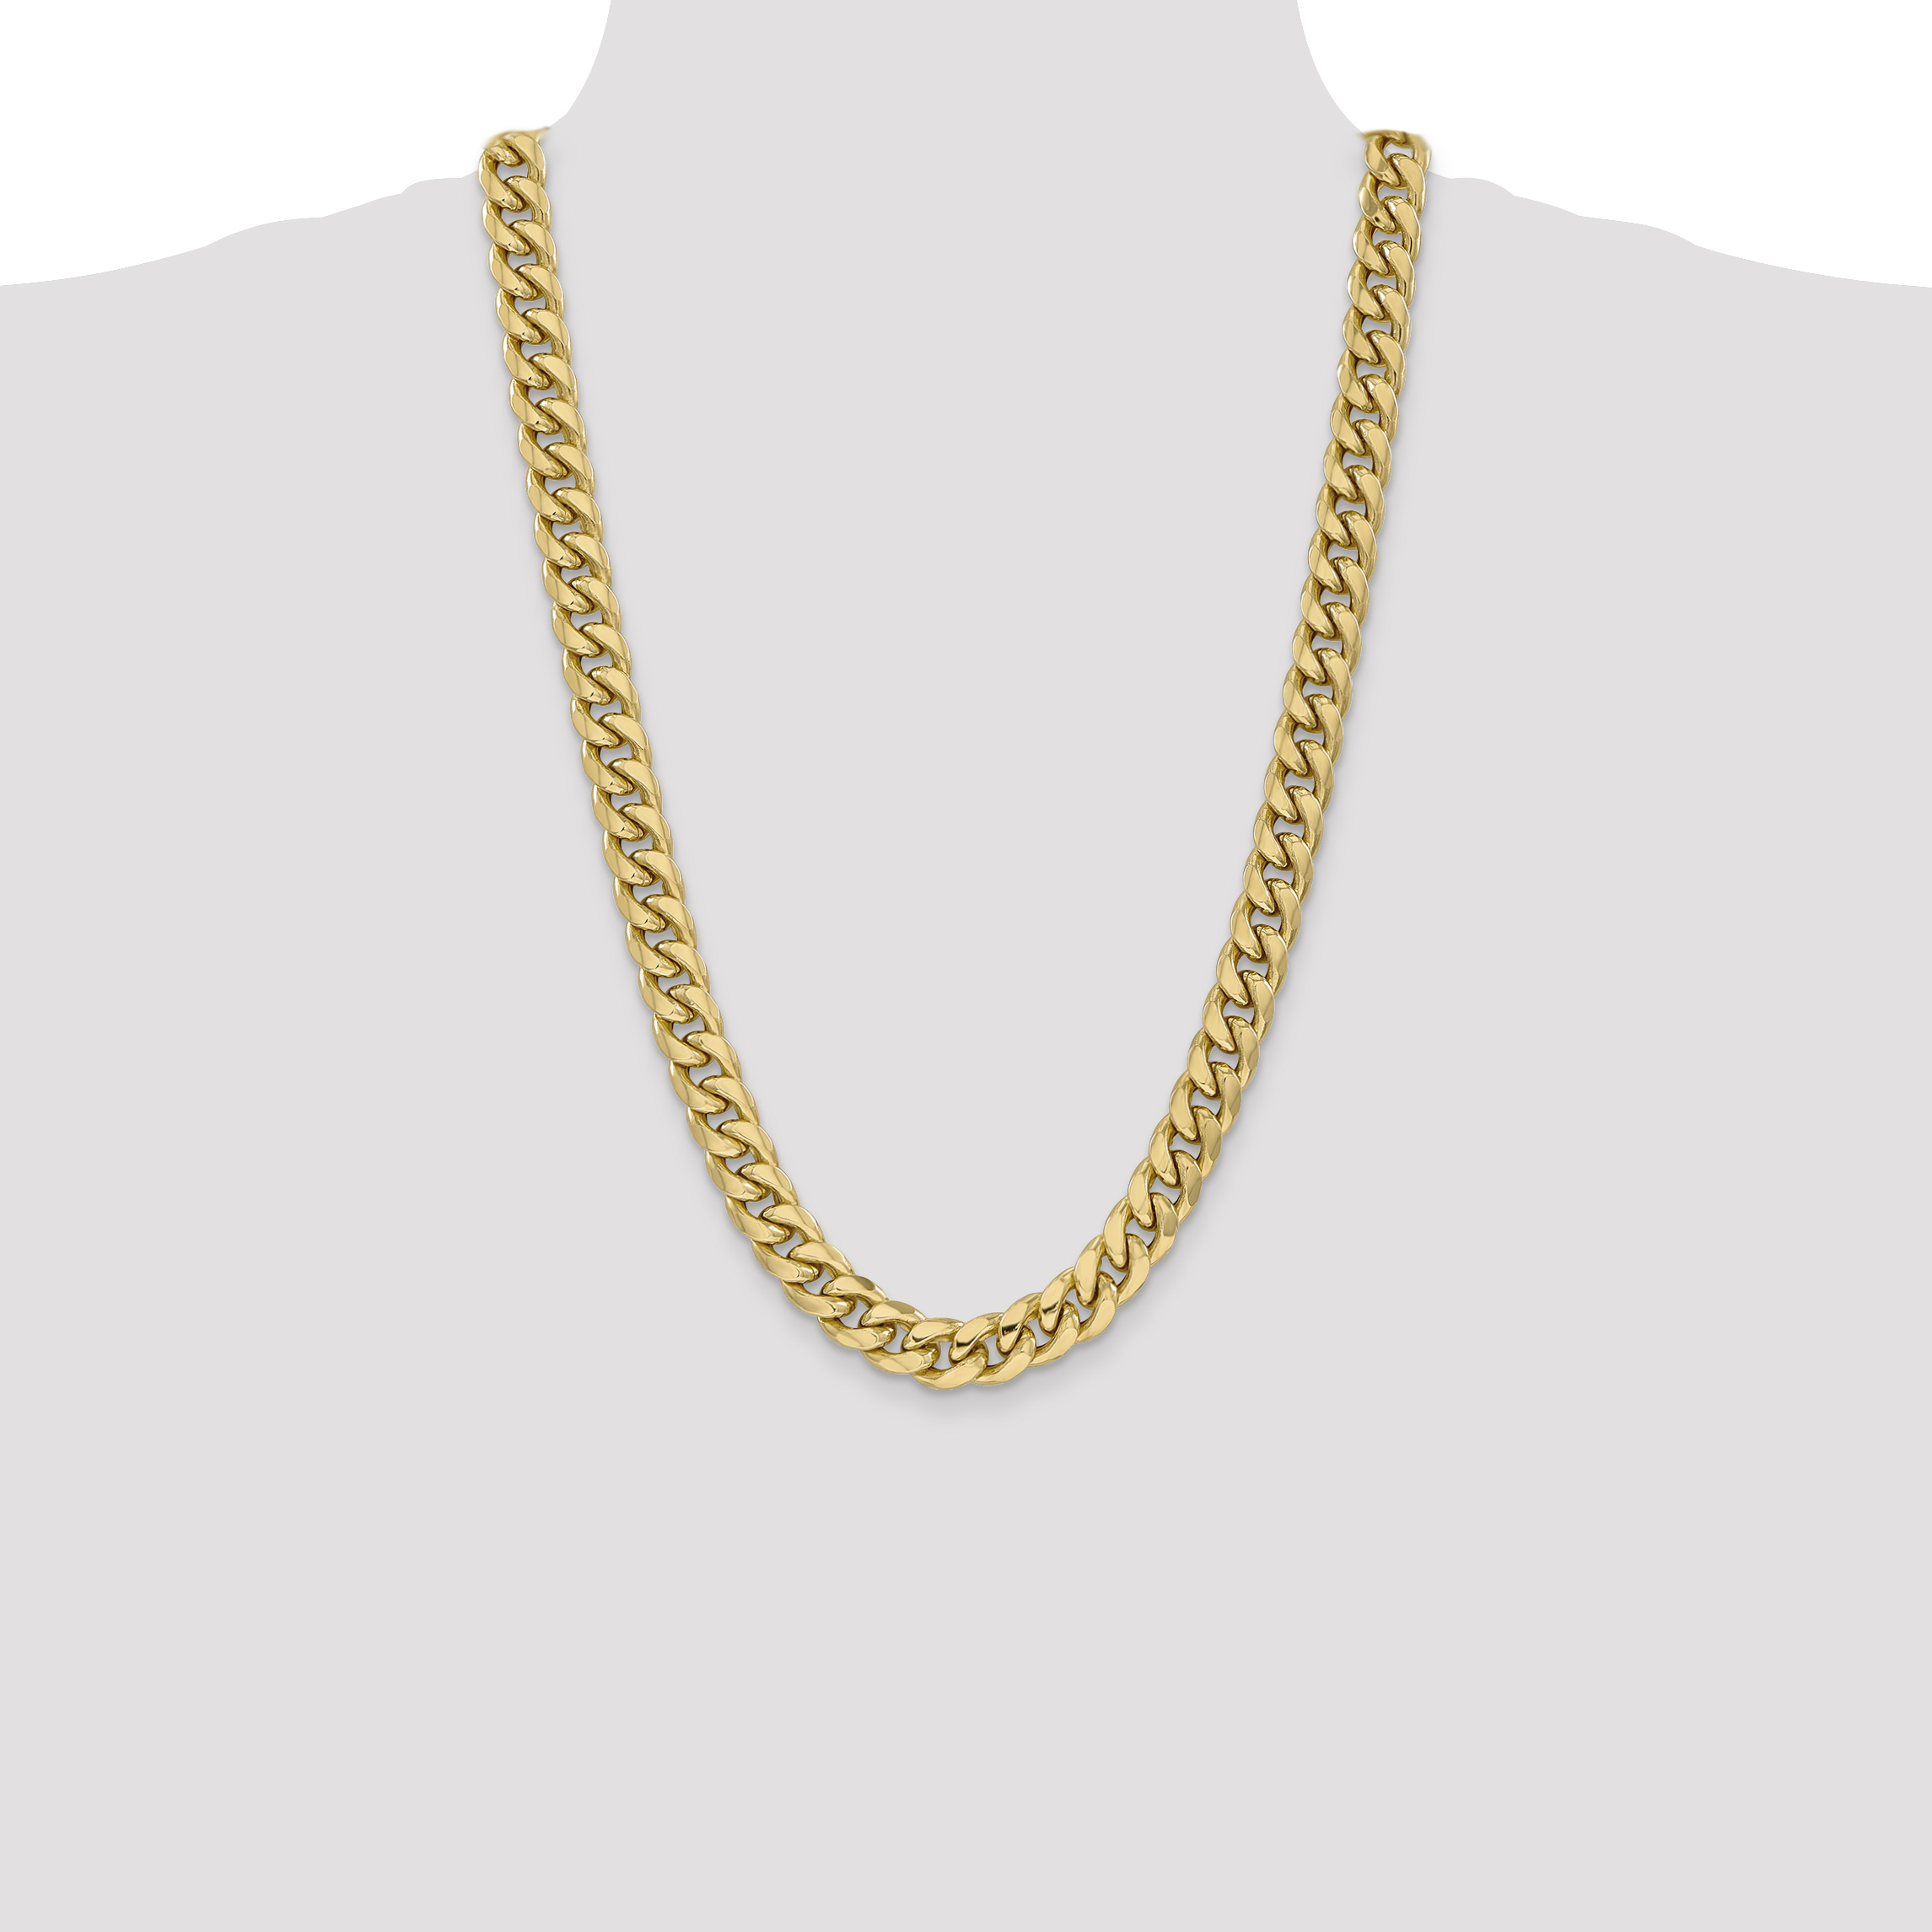 14k Yellow Gold 11mm Miami Cuban Chain Necklace 26 Inch Pendant Charm Curb Fine Jewelry Gifts For Women For Her - image 1 of 5